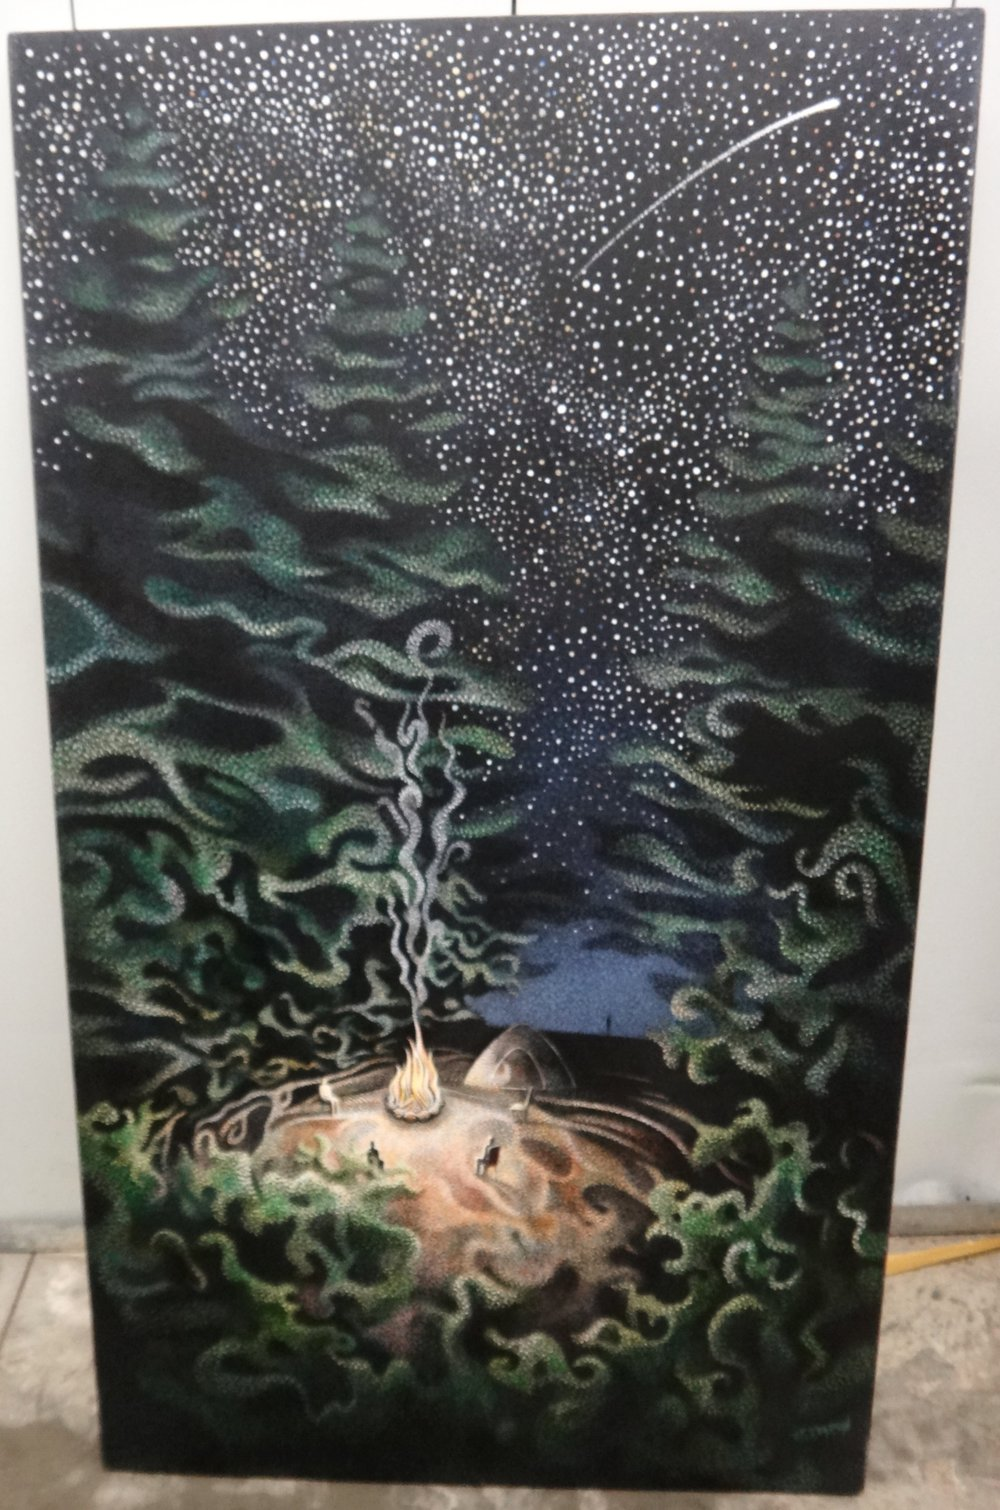 "Title:Untitled  Medium: Acrylic on Canvas  Dimensions: 45"" x 26""  Framed: No  Price: Contact for Inquiry"